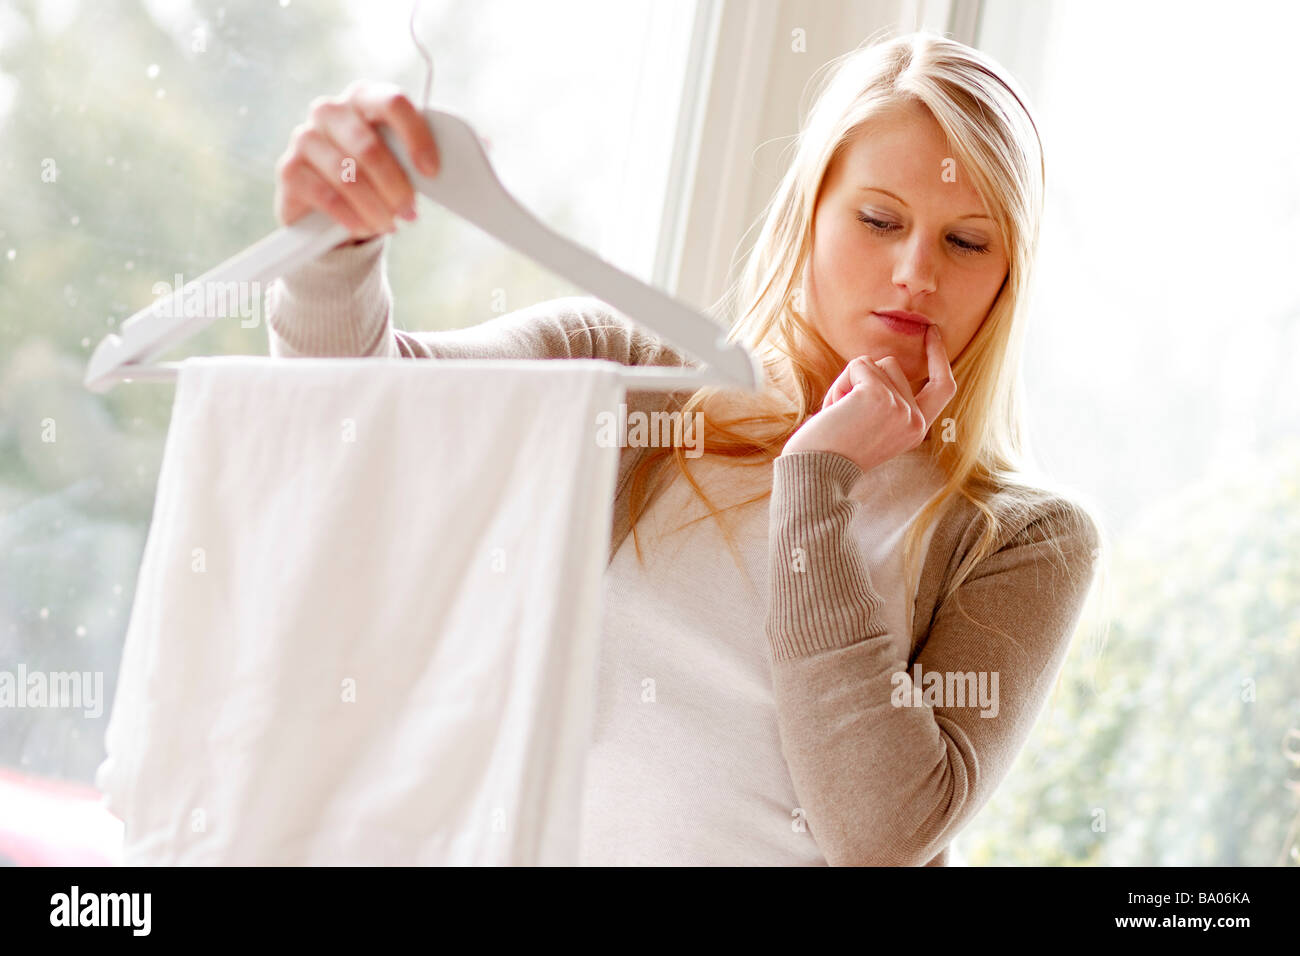 Woman looking at pants on hanger - Stock Image